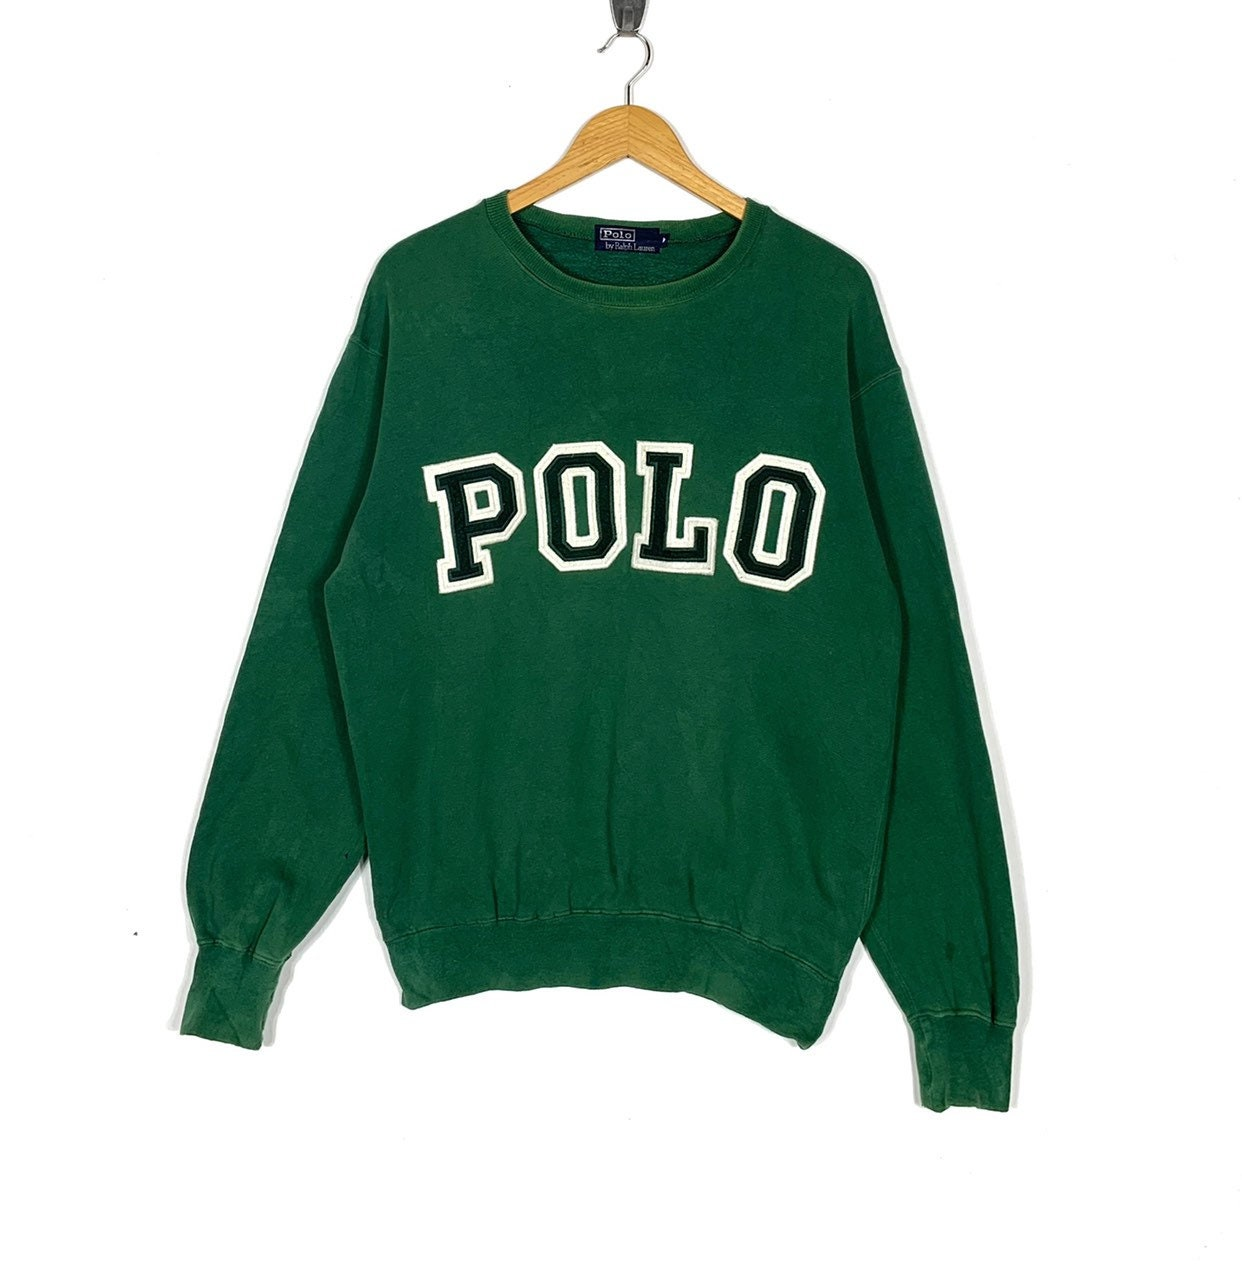 980152270 Polo Ralph Lauren Sweatshirt Spell Out Big Logo Embroidery